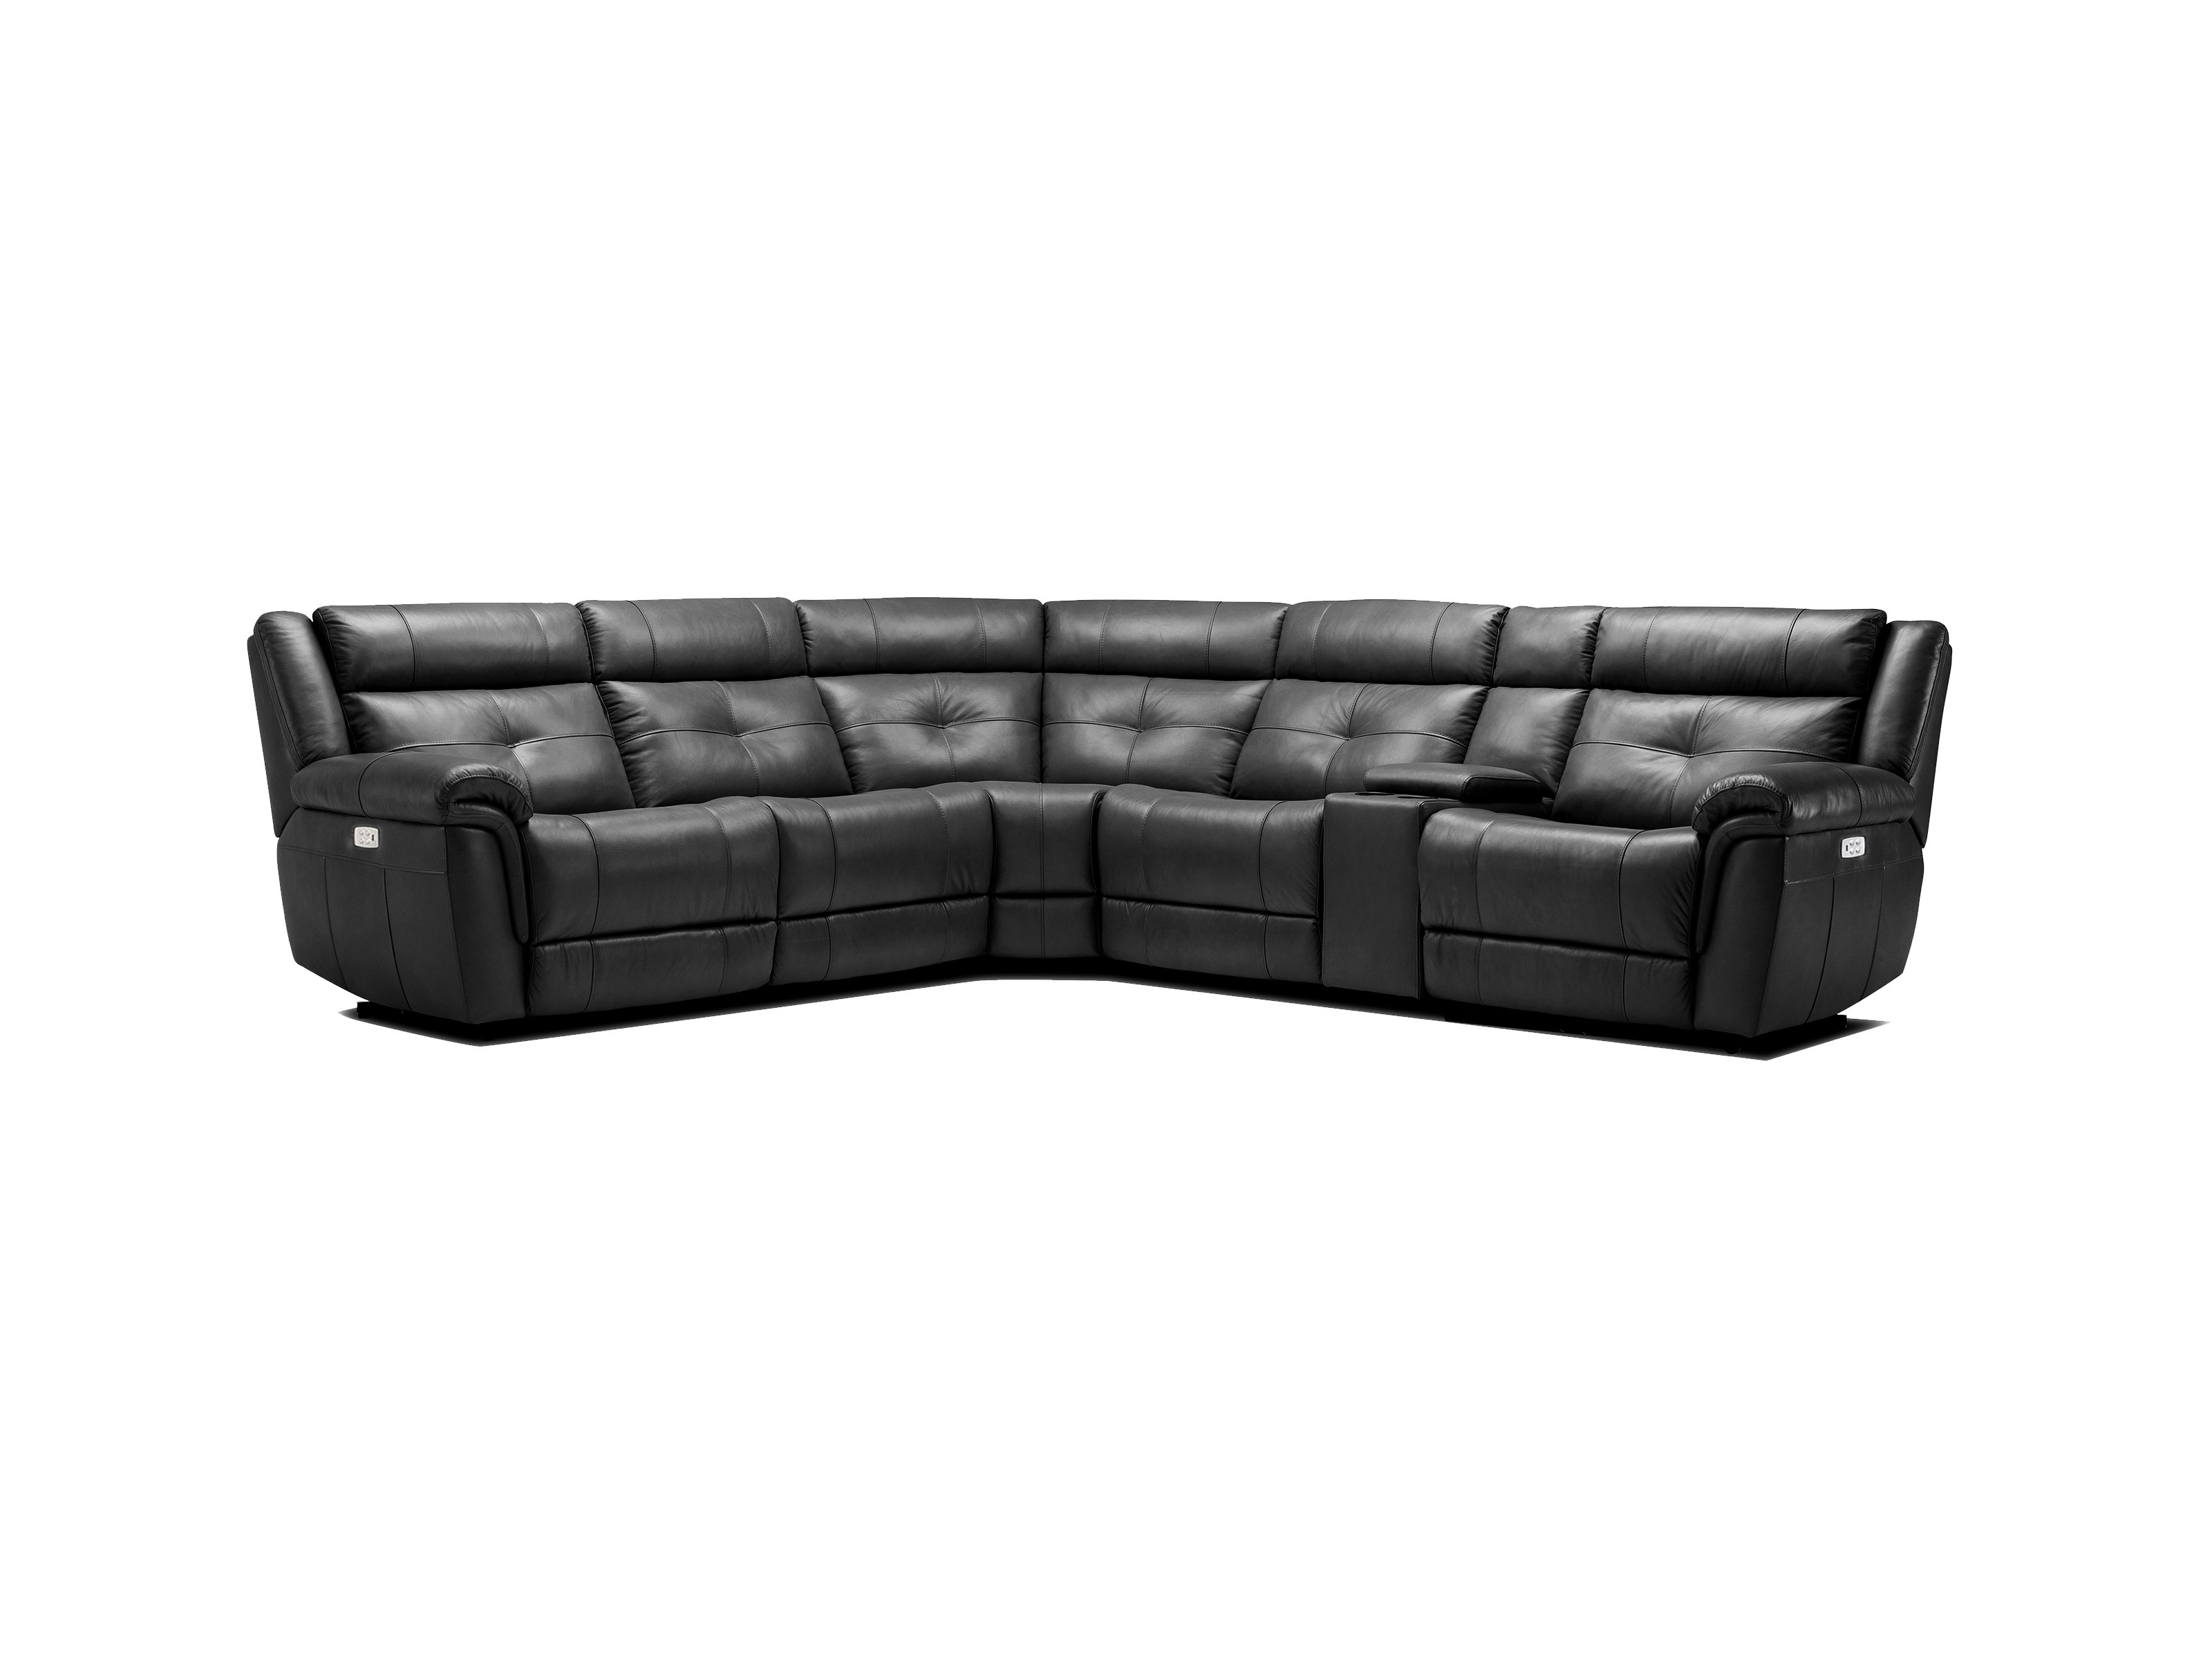 Dayton Ohio Sectional Sofas For Popular Sectional Sofas, Leather Sectional, Couch (View 20 of 20)